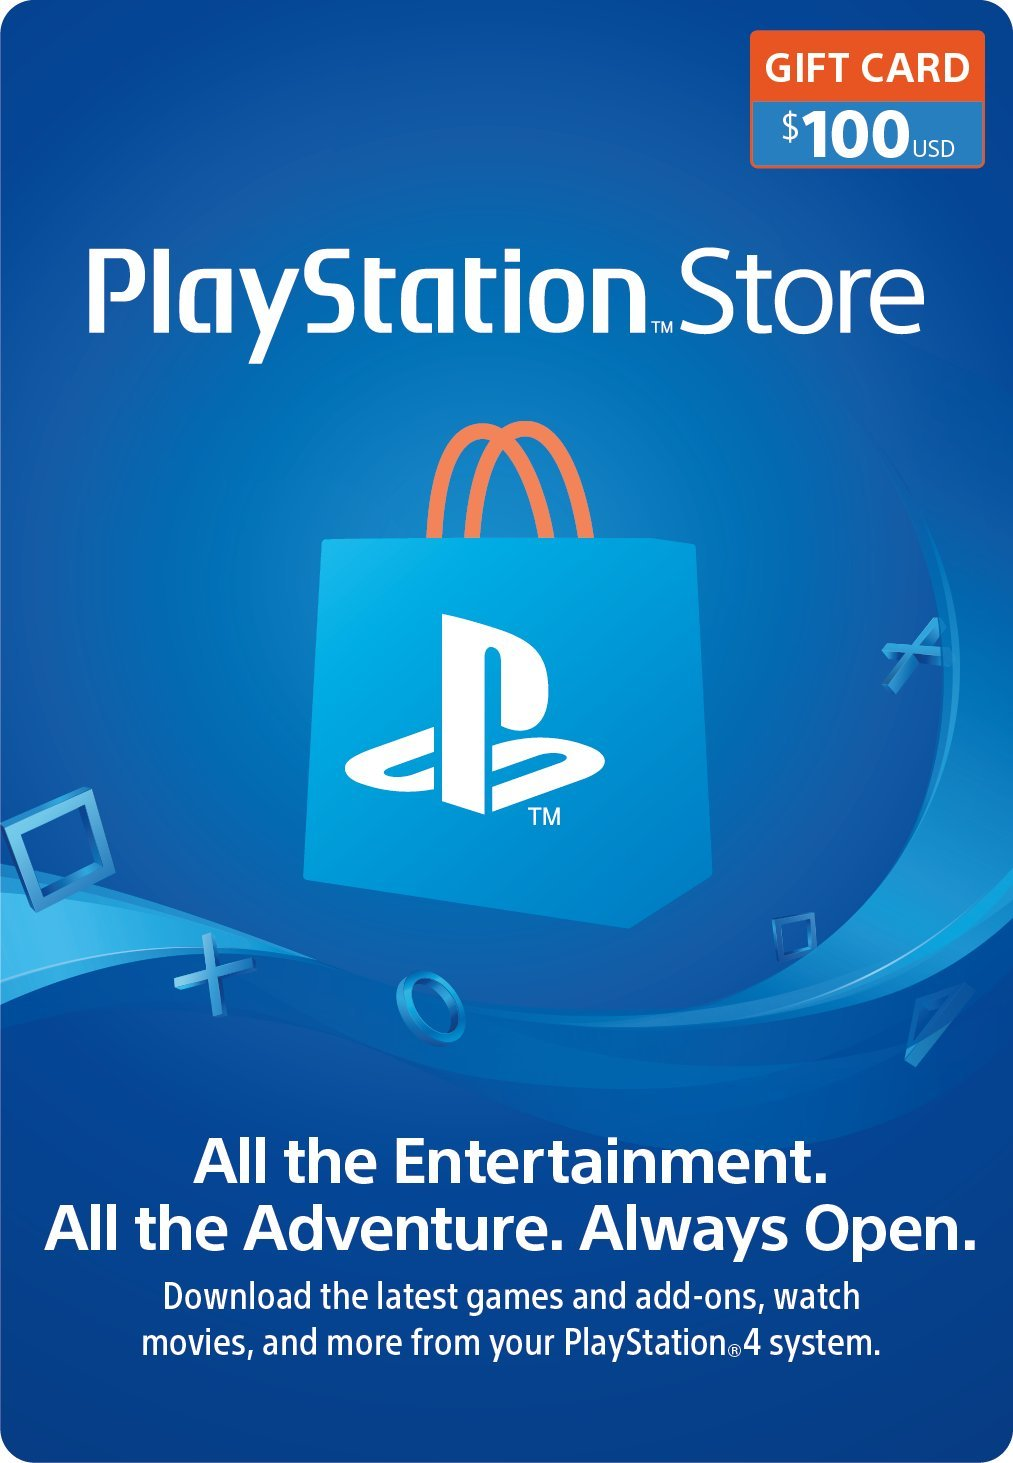 playstation store gift card digital, purchase ps4 gift card online, playstation store gift card digital code, a ps4 gift card, playstation gift card online, playstation card buy, playstation gift card 25, 5$ psn gift card, 5 psn card, 5$ psn card, playstation gift card digital code, playstation gift card digital